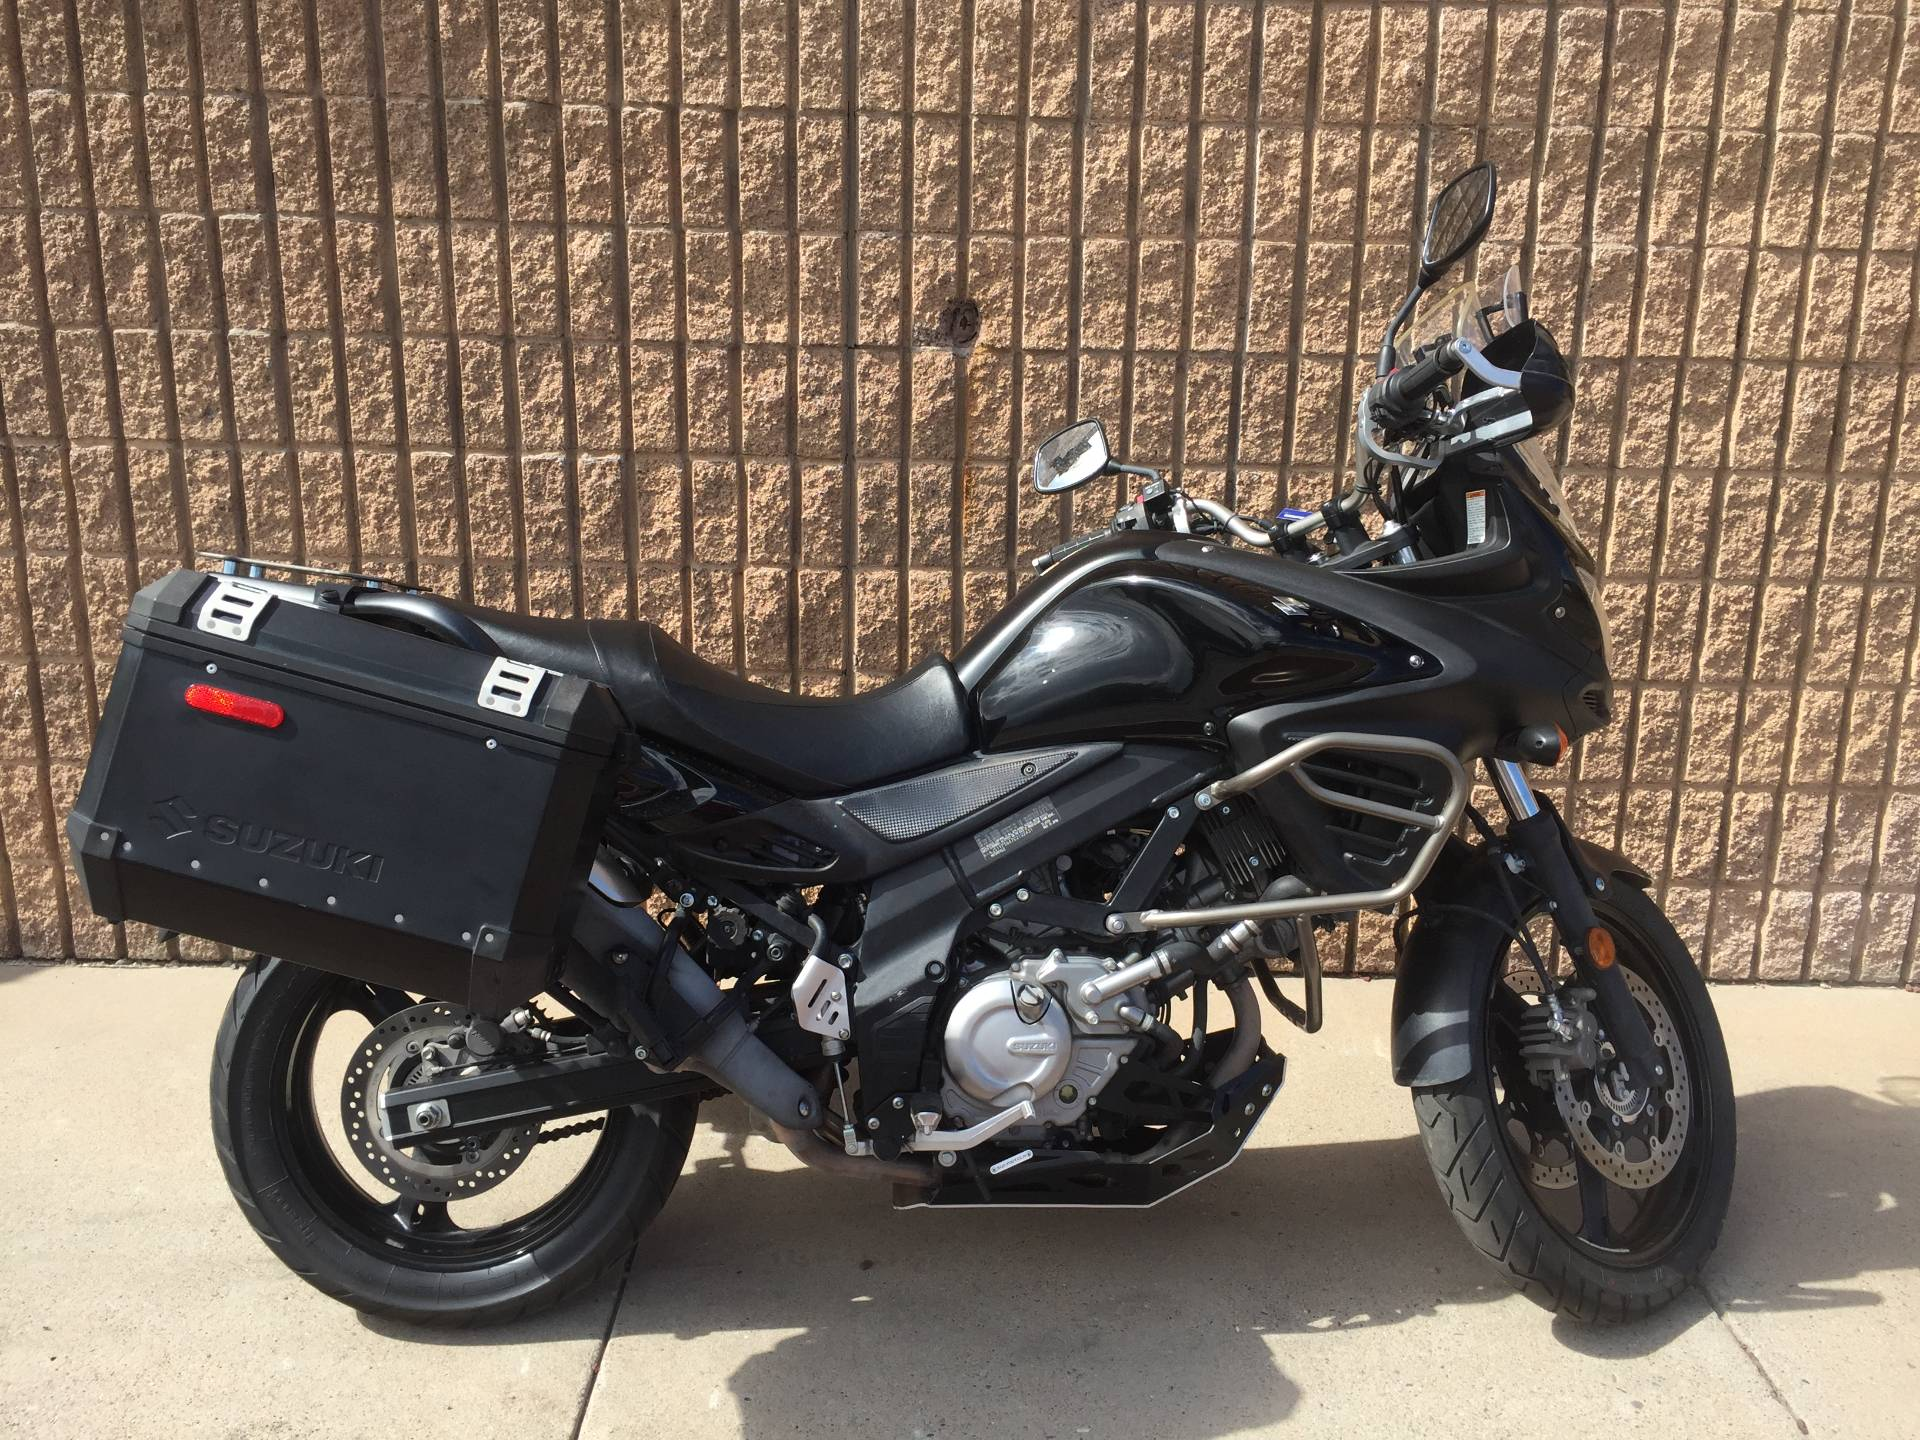 2012 Suzuki V-Strom 650 ABS Adventure in Albuquerque, New Mexico